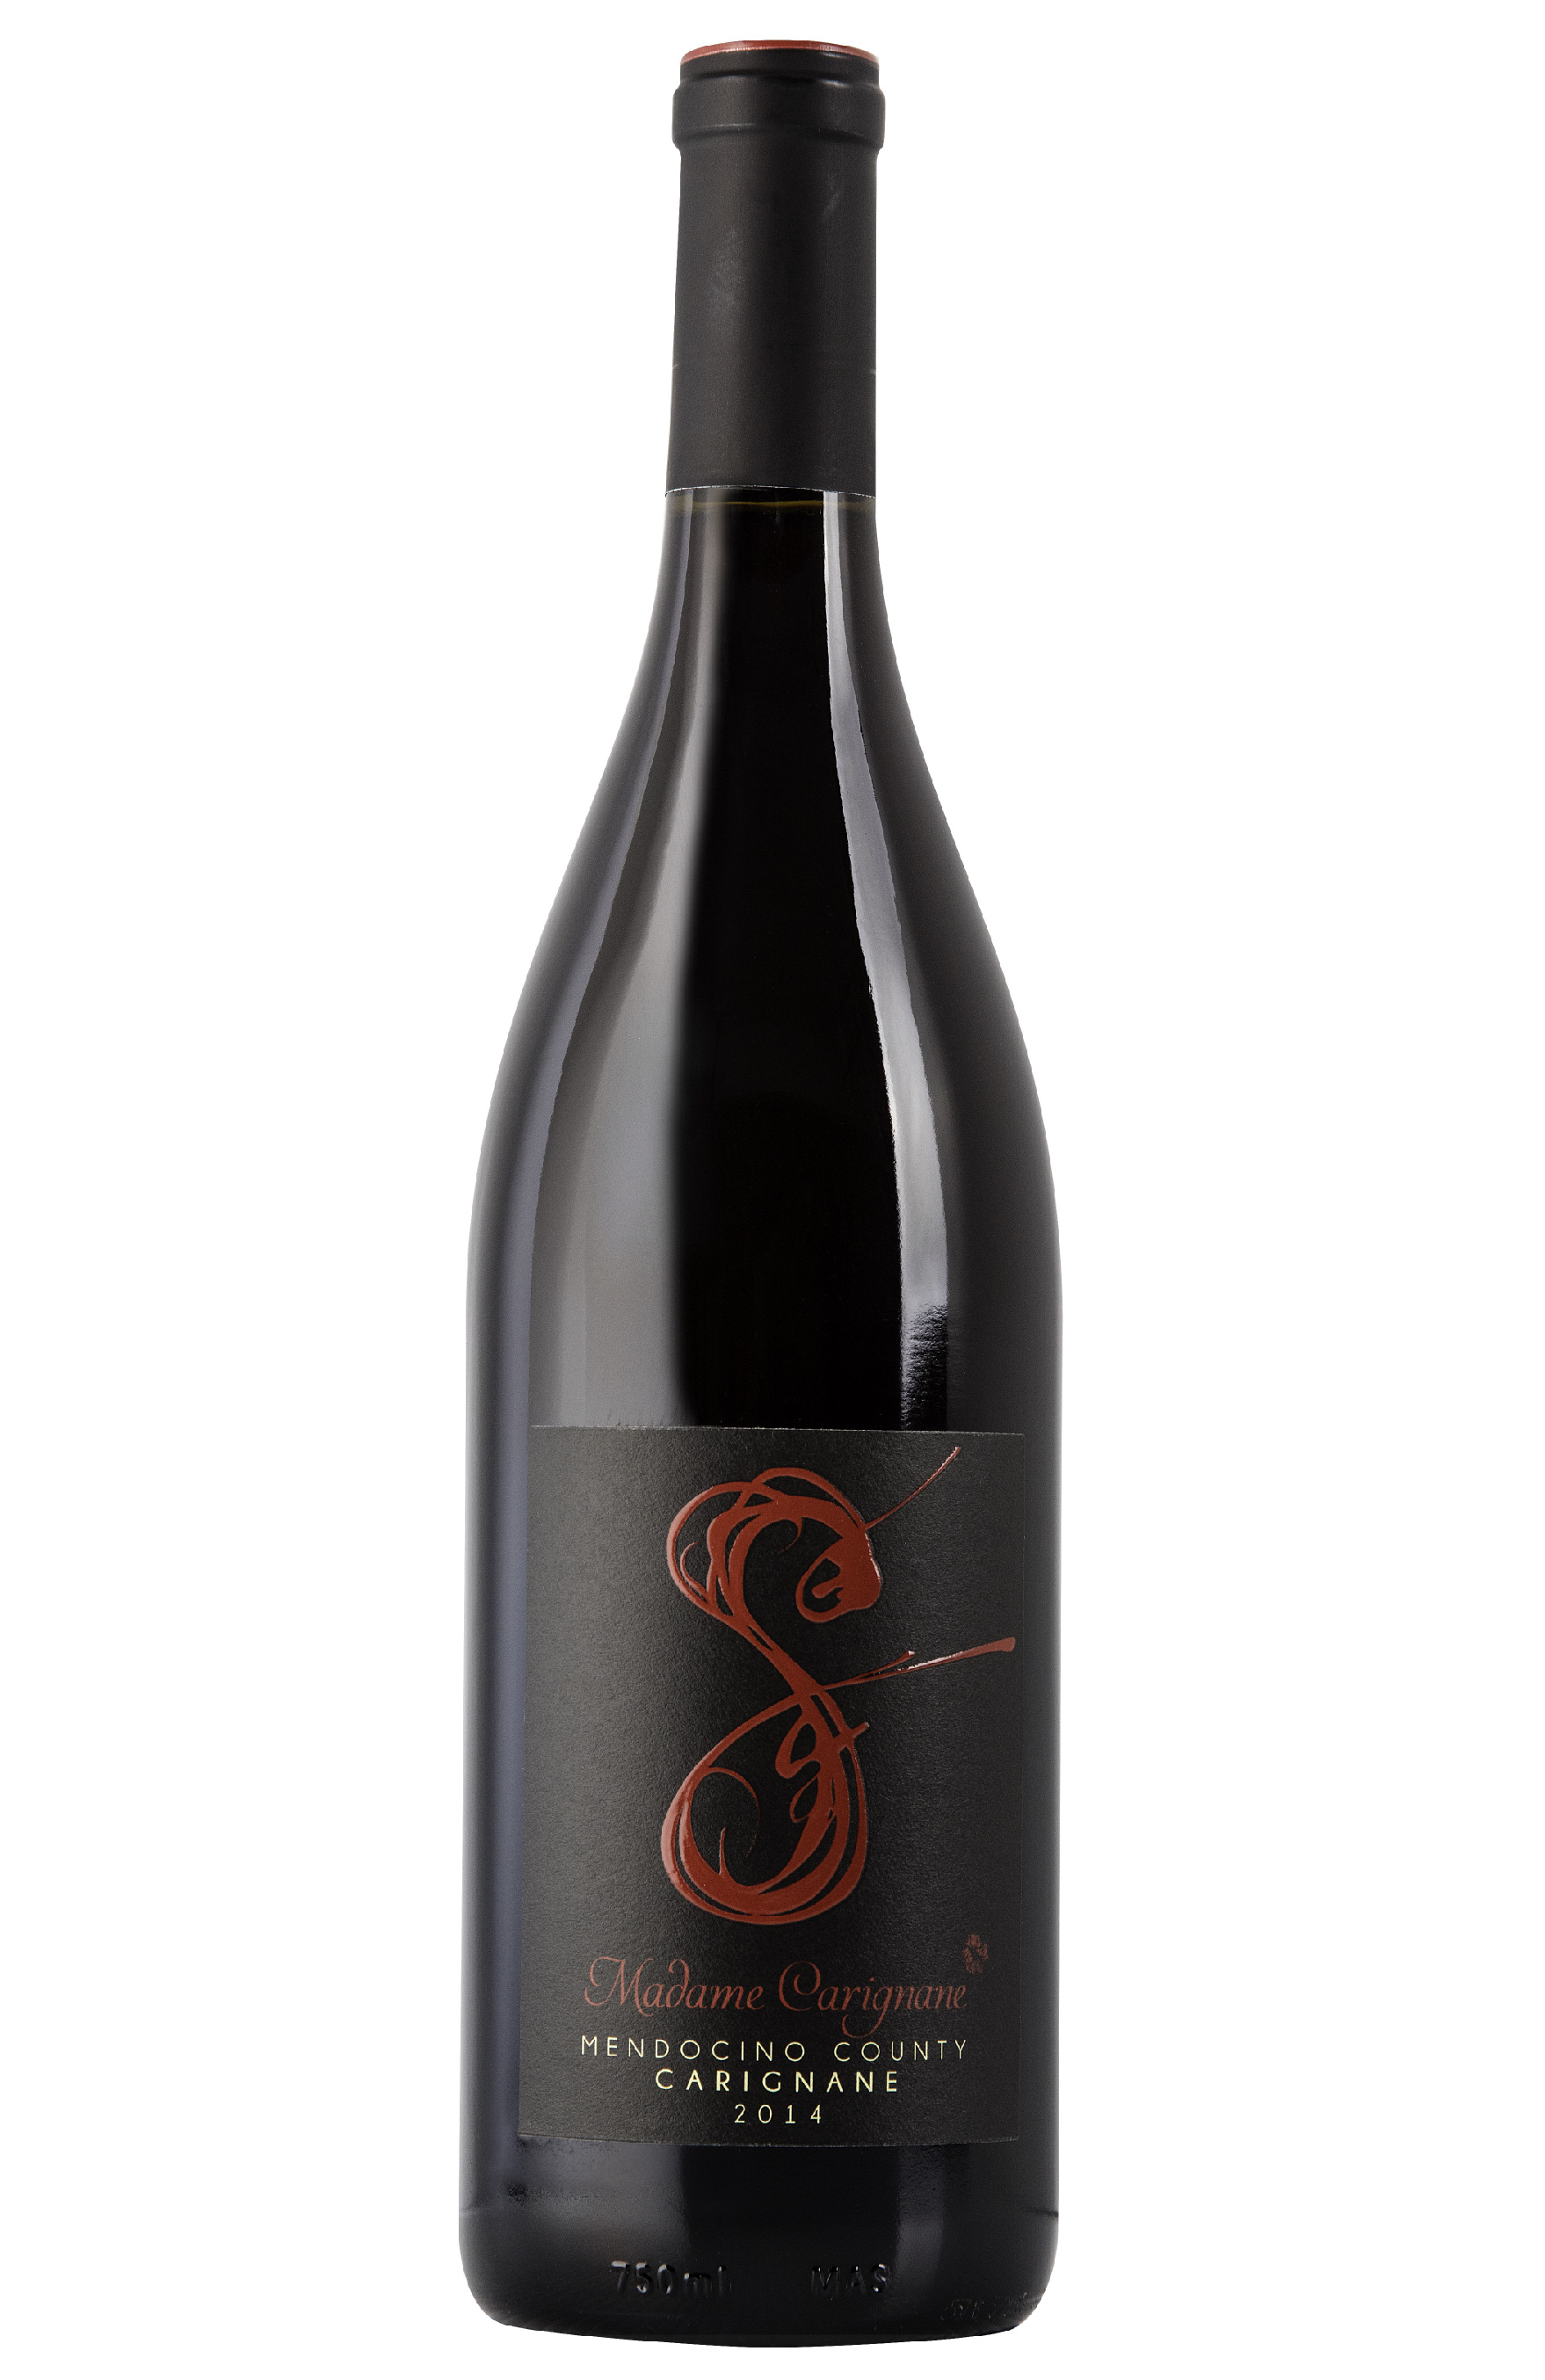 2014 Madame Carignane Mendocino County (SOLD OUT)